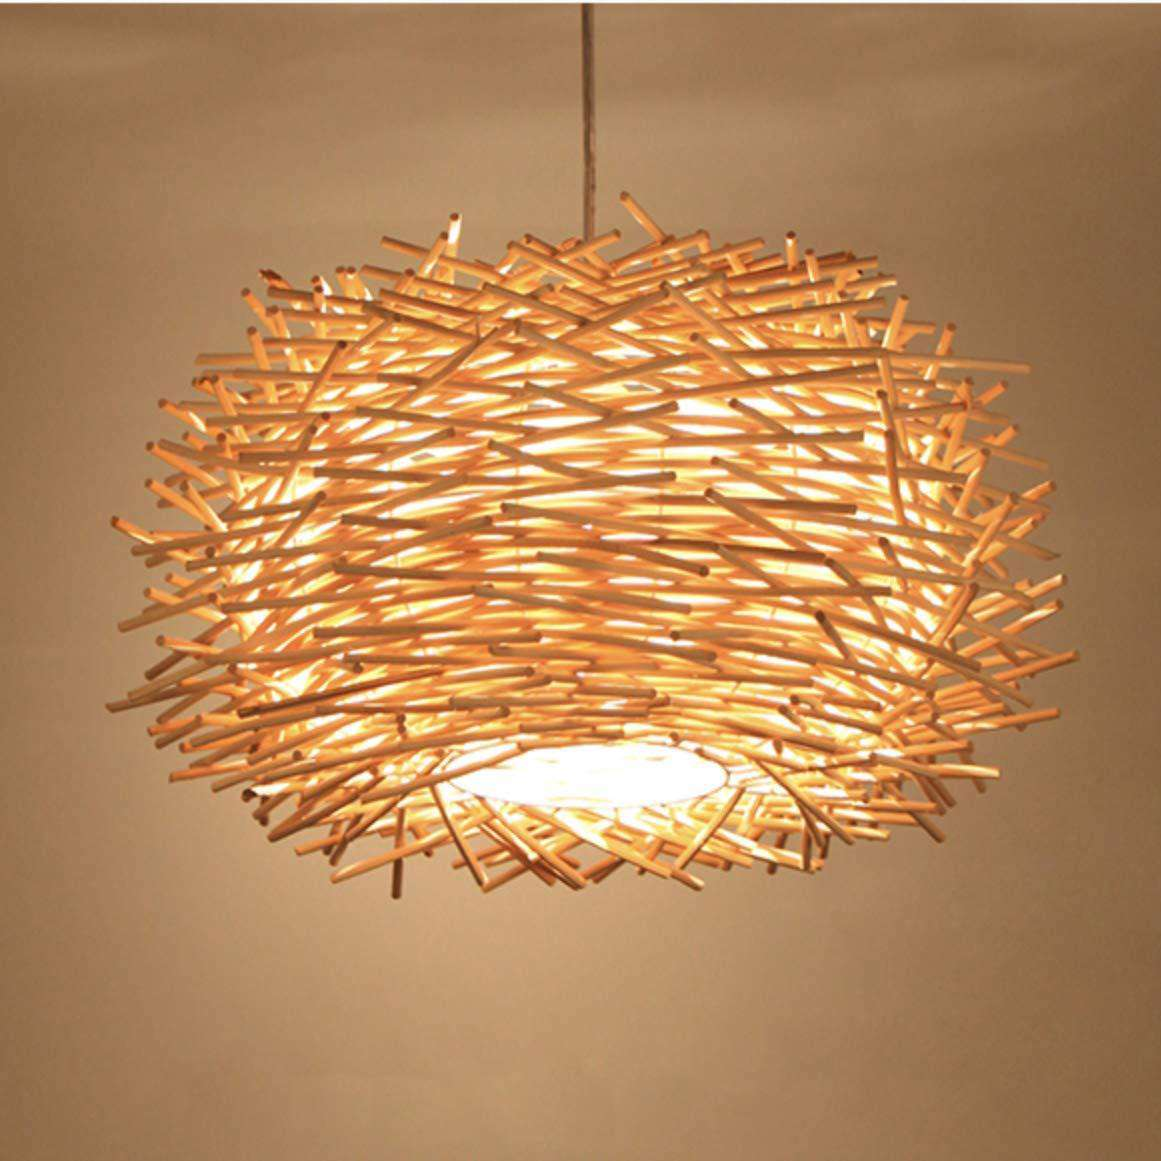 LED Ceiling Light Cover Hand Woven Rattan Chandelier Bird Nest Wooden Ceiling Lamp